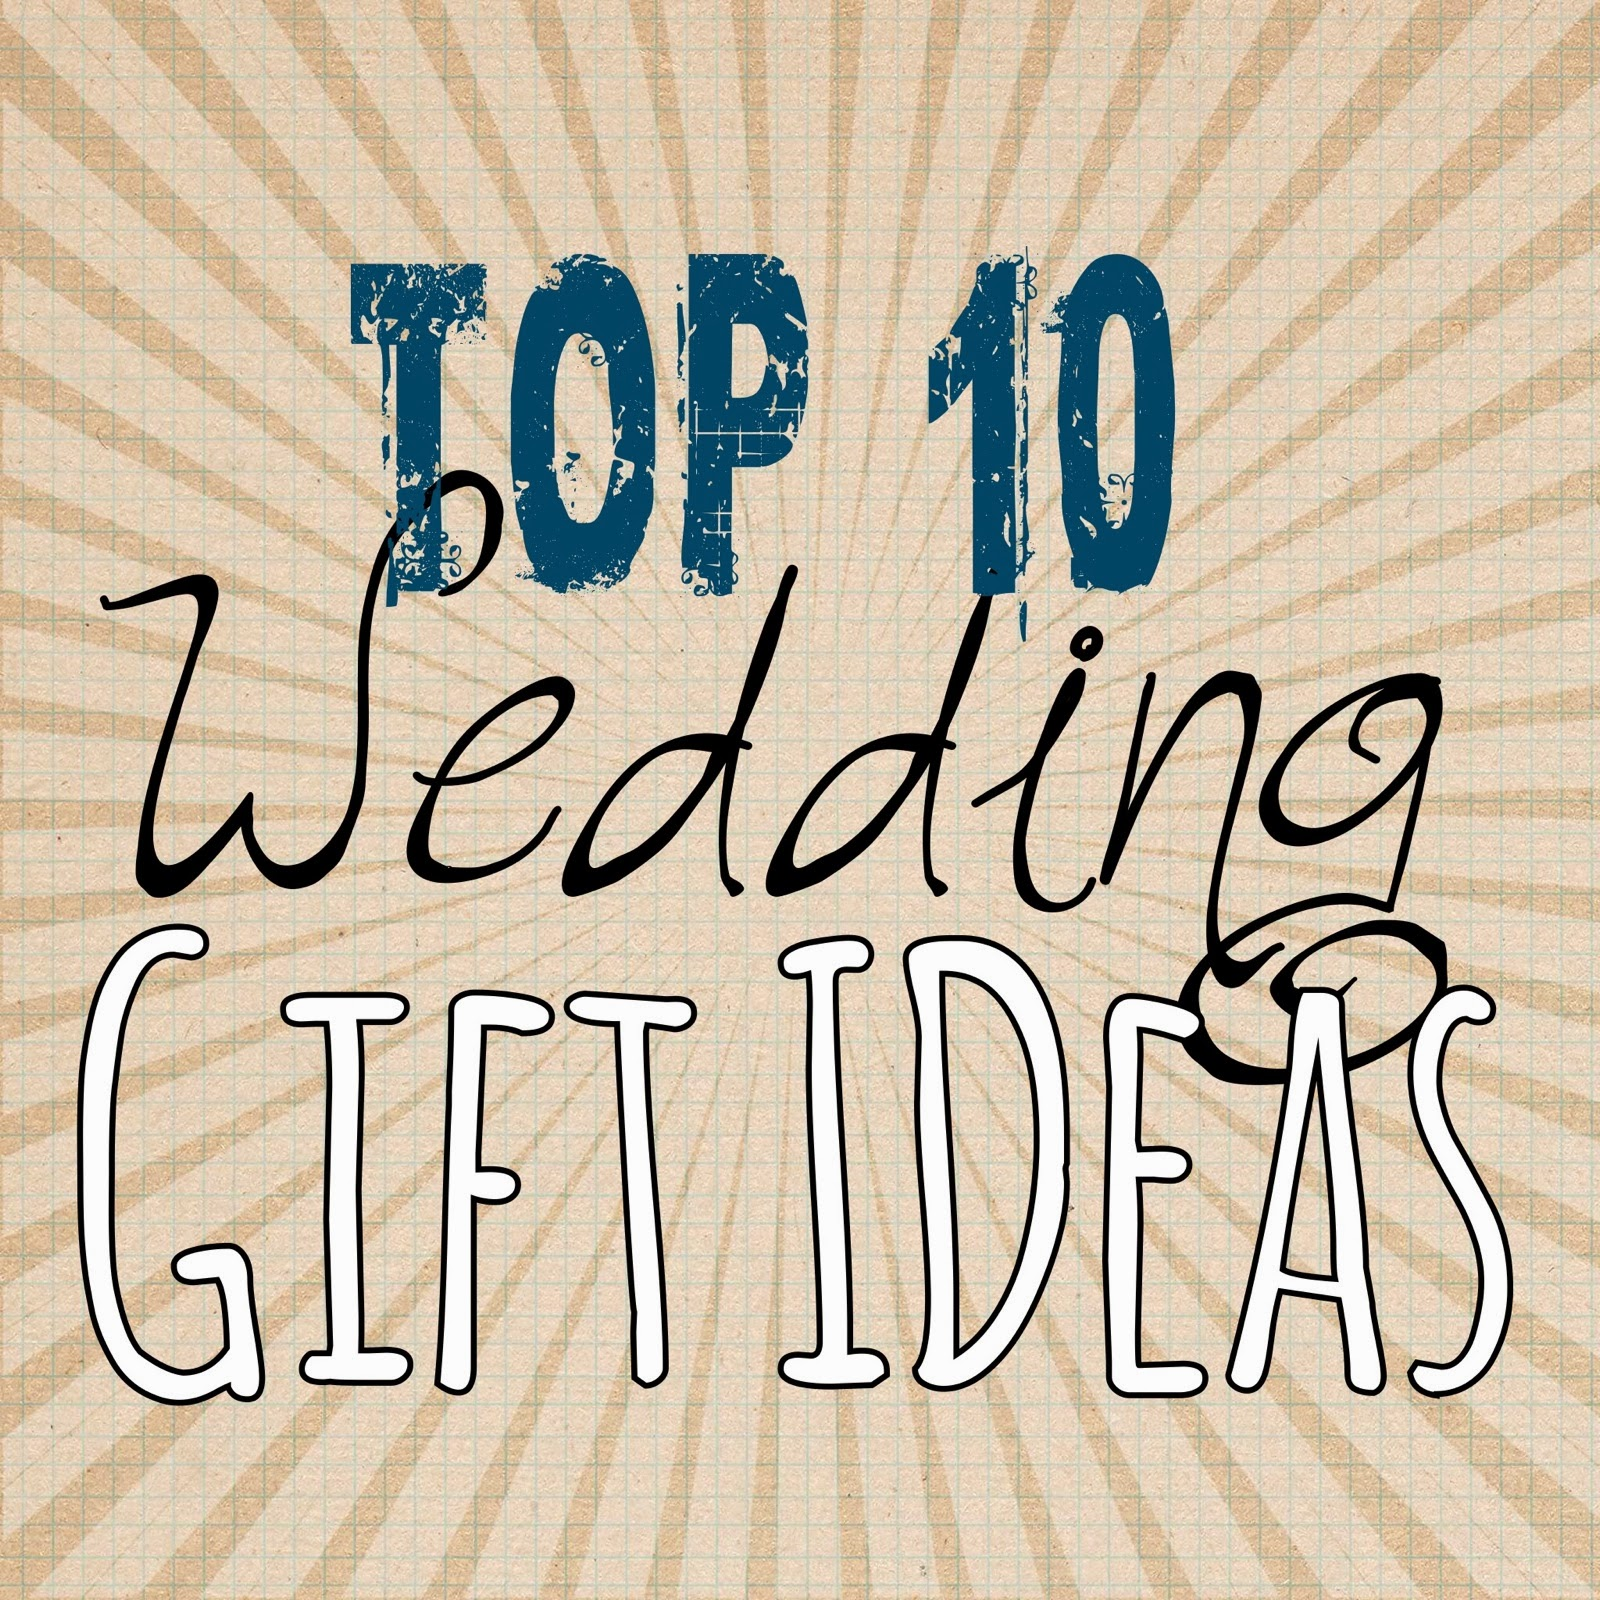 Wedding Gift Ideas For Friend: Top 10 Wedding Gift Ideas